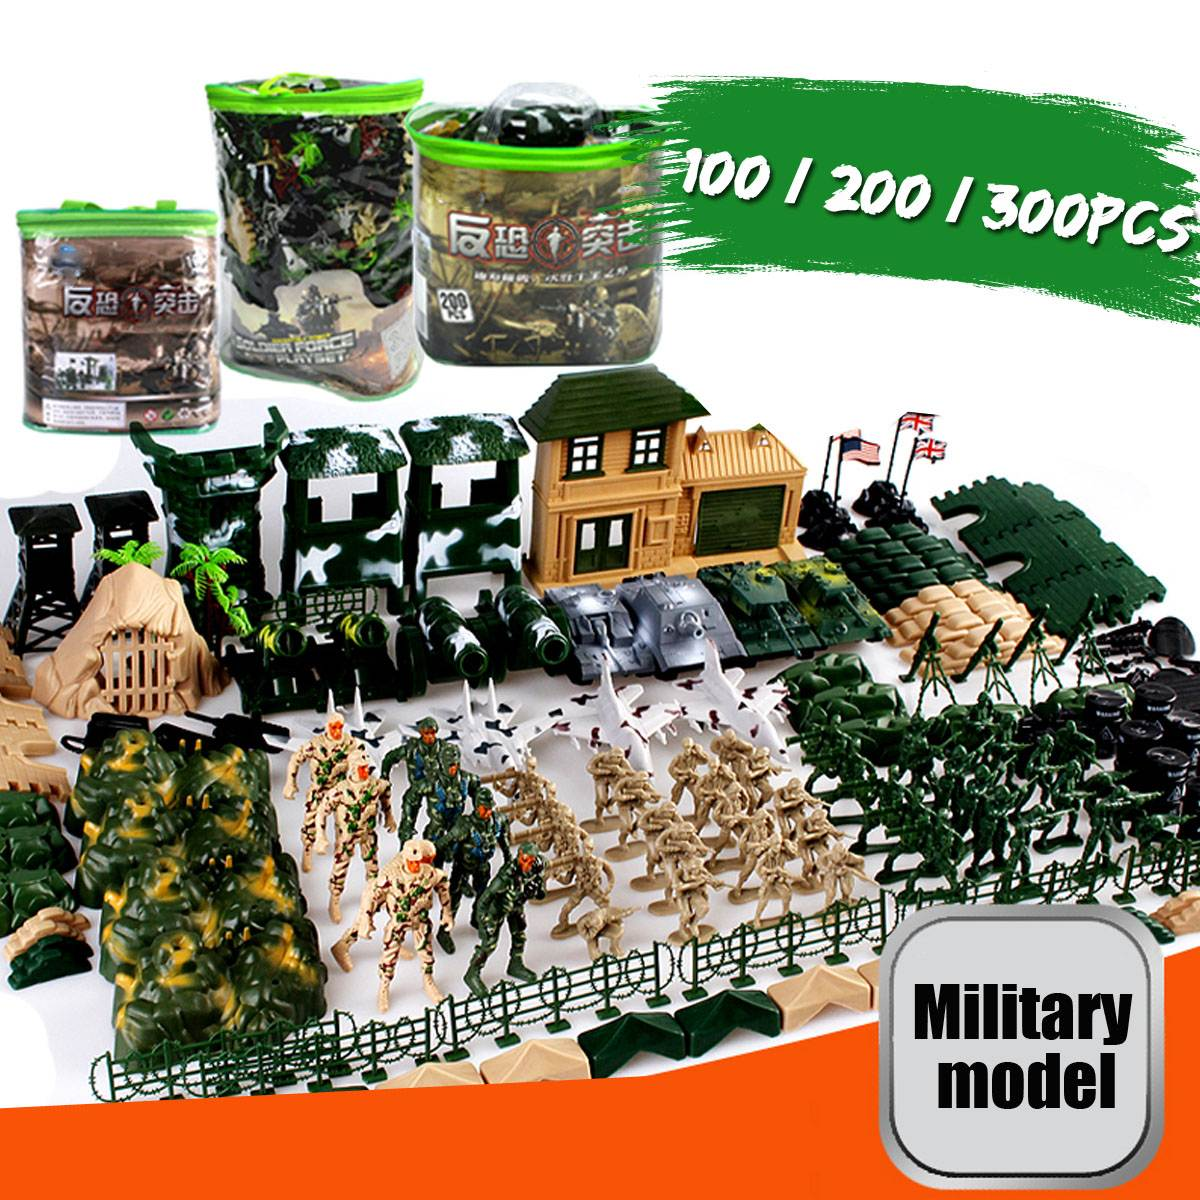 100/200/300PCS Military Model Plastic Army Soldier Model Toy DIY Figures Action Intelligence Education Toys100/200/300PCS Military Model Plastic Army Soldier Model Toy DIY Figures Action Intelligence Education Toys